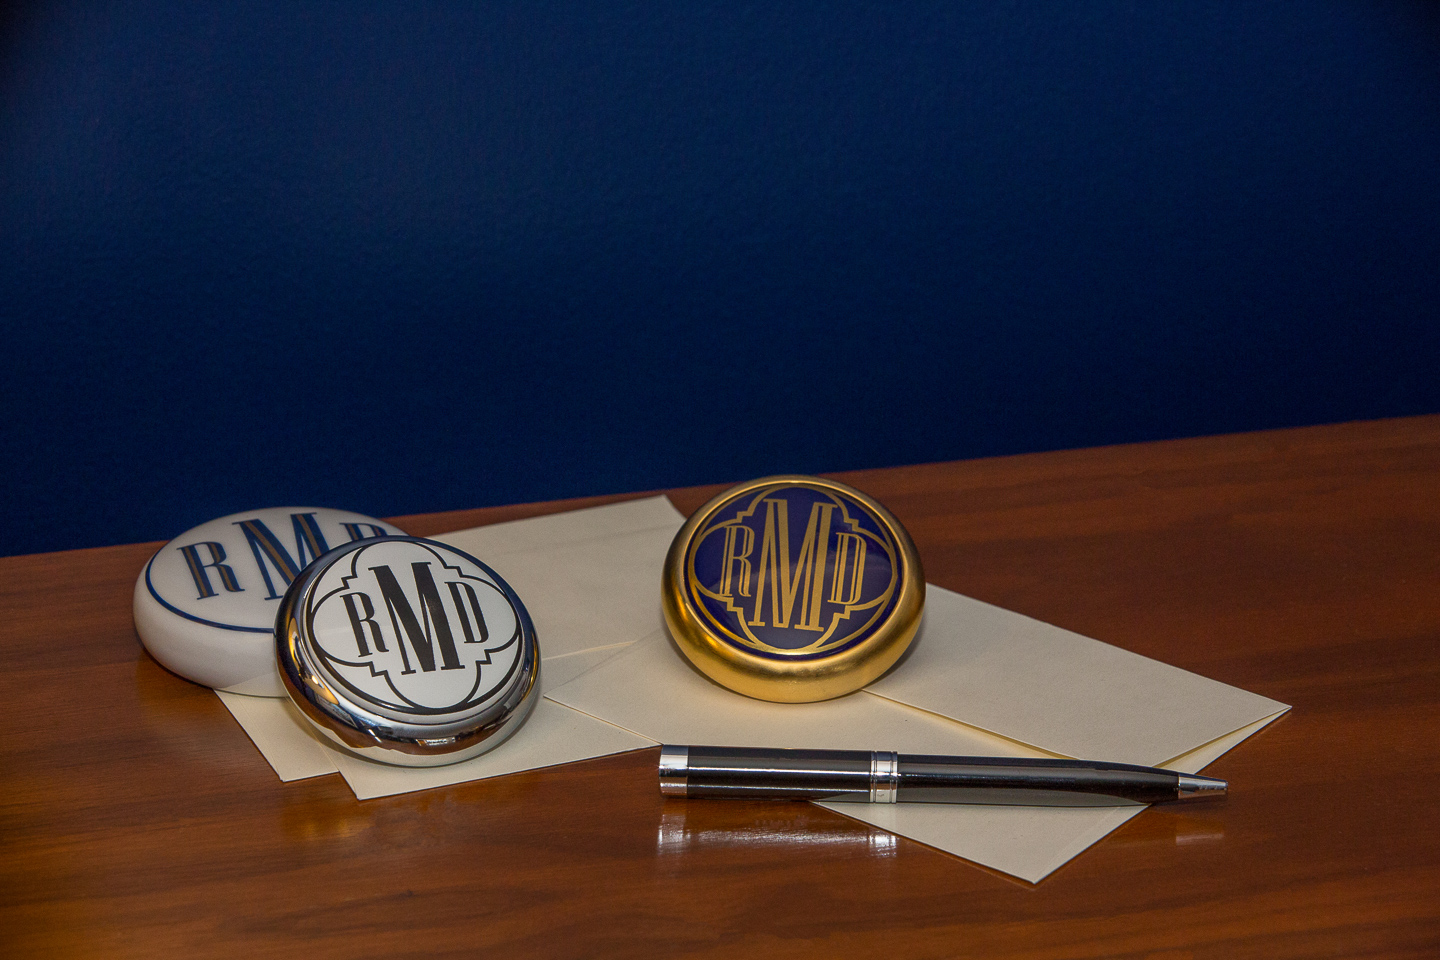 Monogrammed paperweights